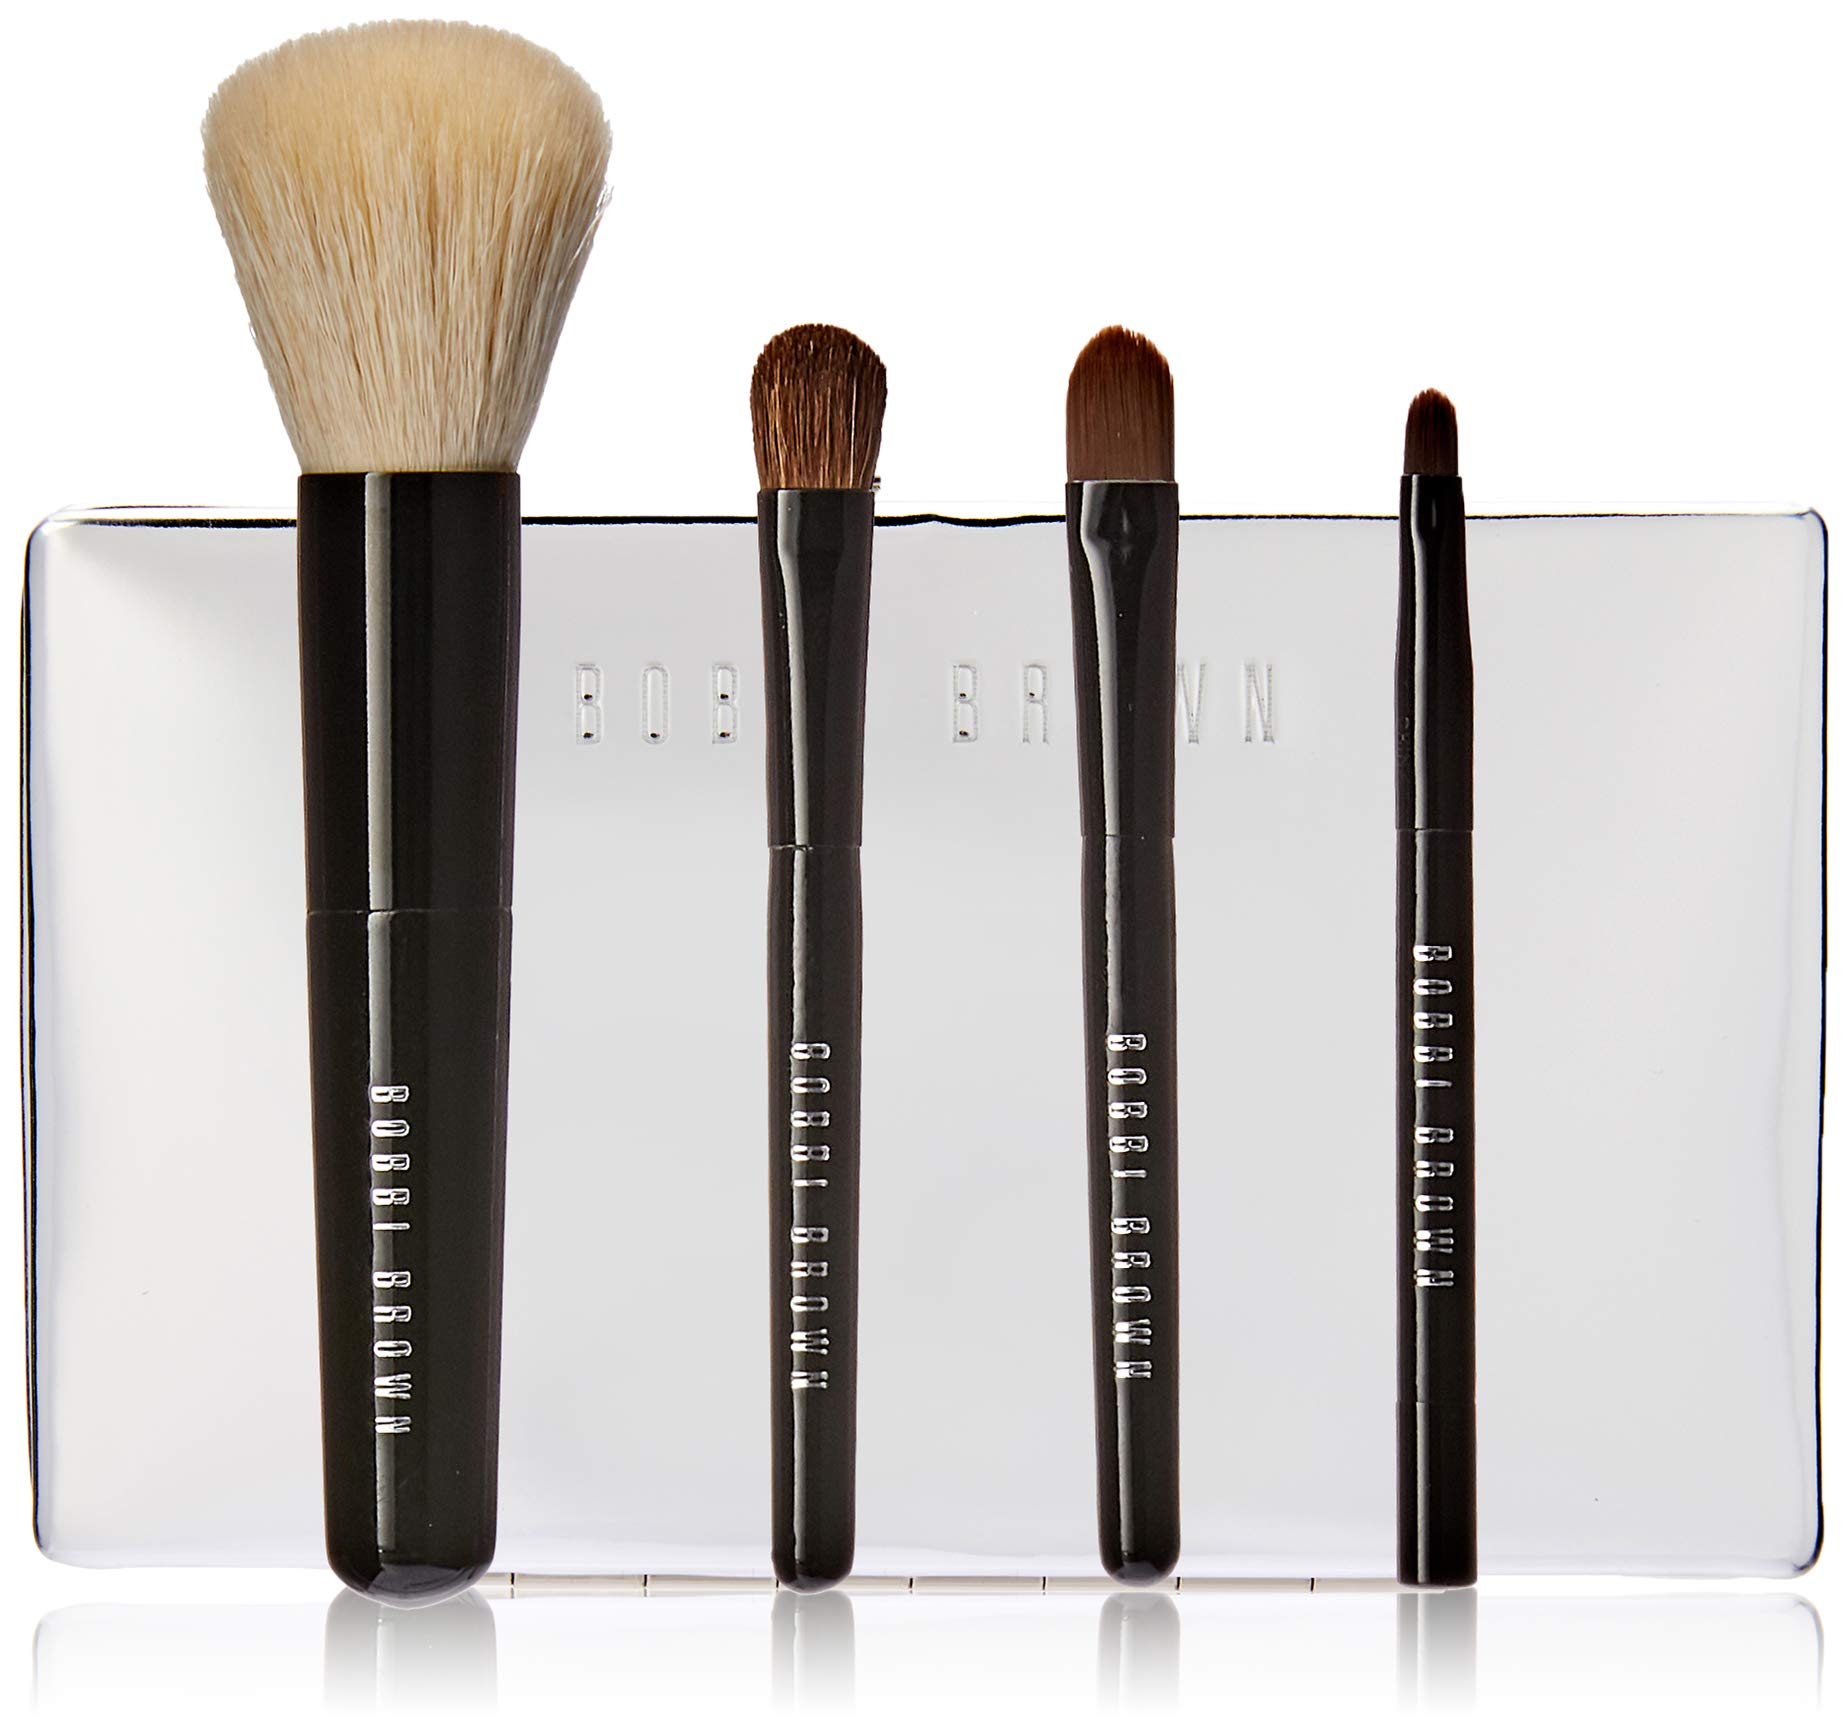 Bobbi Brown Mini Brush Set By Bobbi Brown for Women - 5 Pc Brush Case, Mini Face Blender Brush, Mini Cream Shadown Brush, Mini Eye Shadown Brush, Mini Ultra Fine Eyeliner Brush, 5 Count